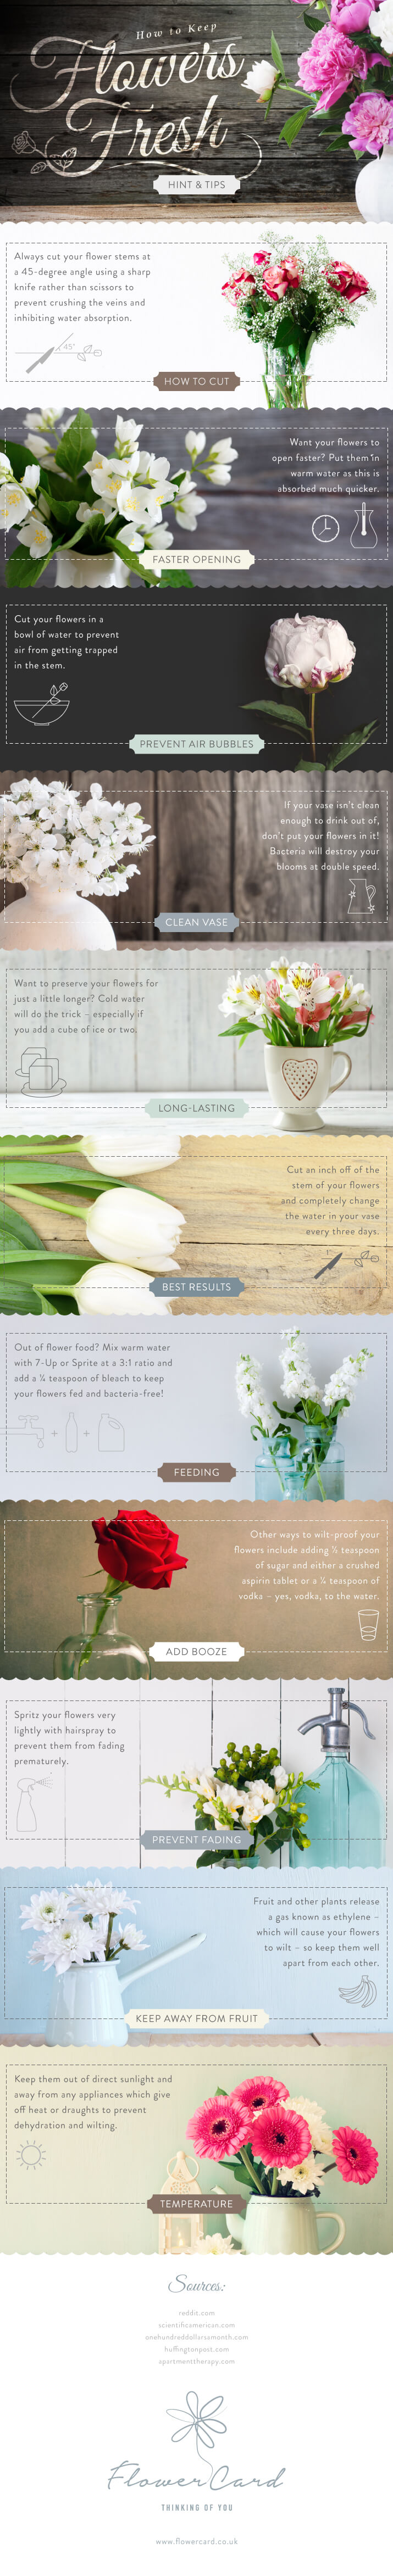 Wedding Flowers How To Keep Fresh : Tips to keep your flowers fresh for longer